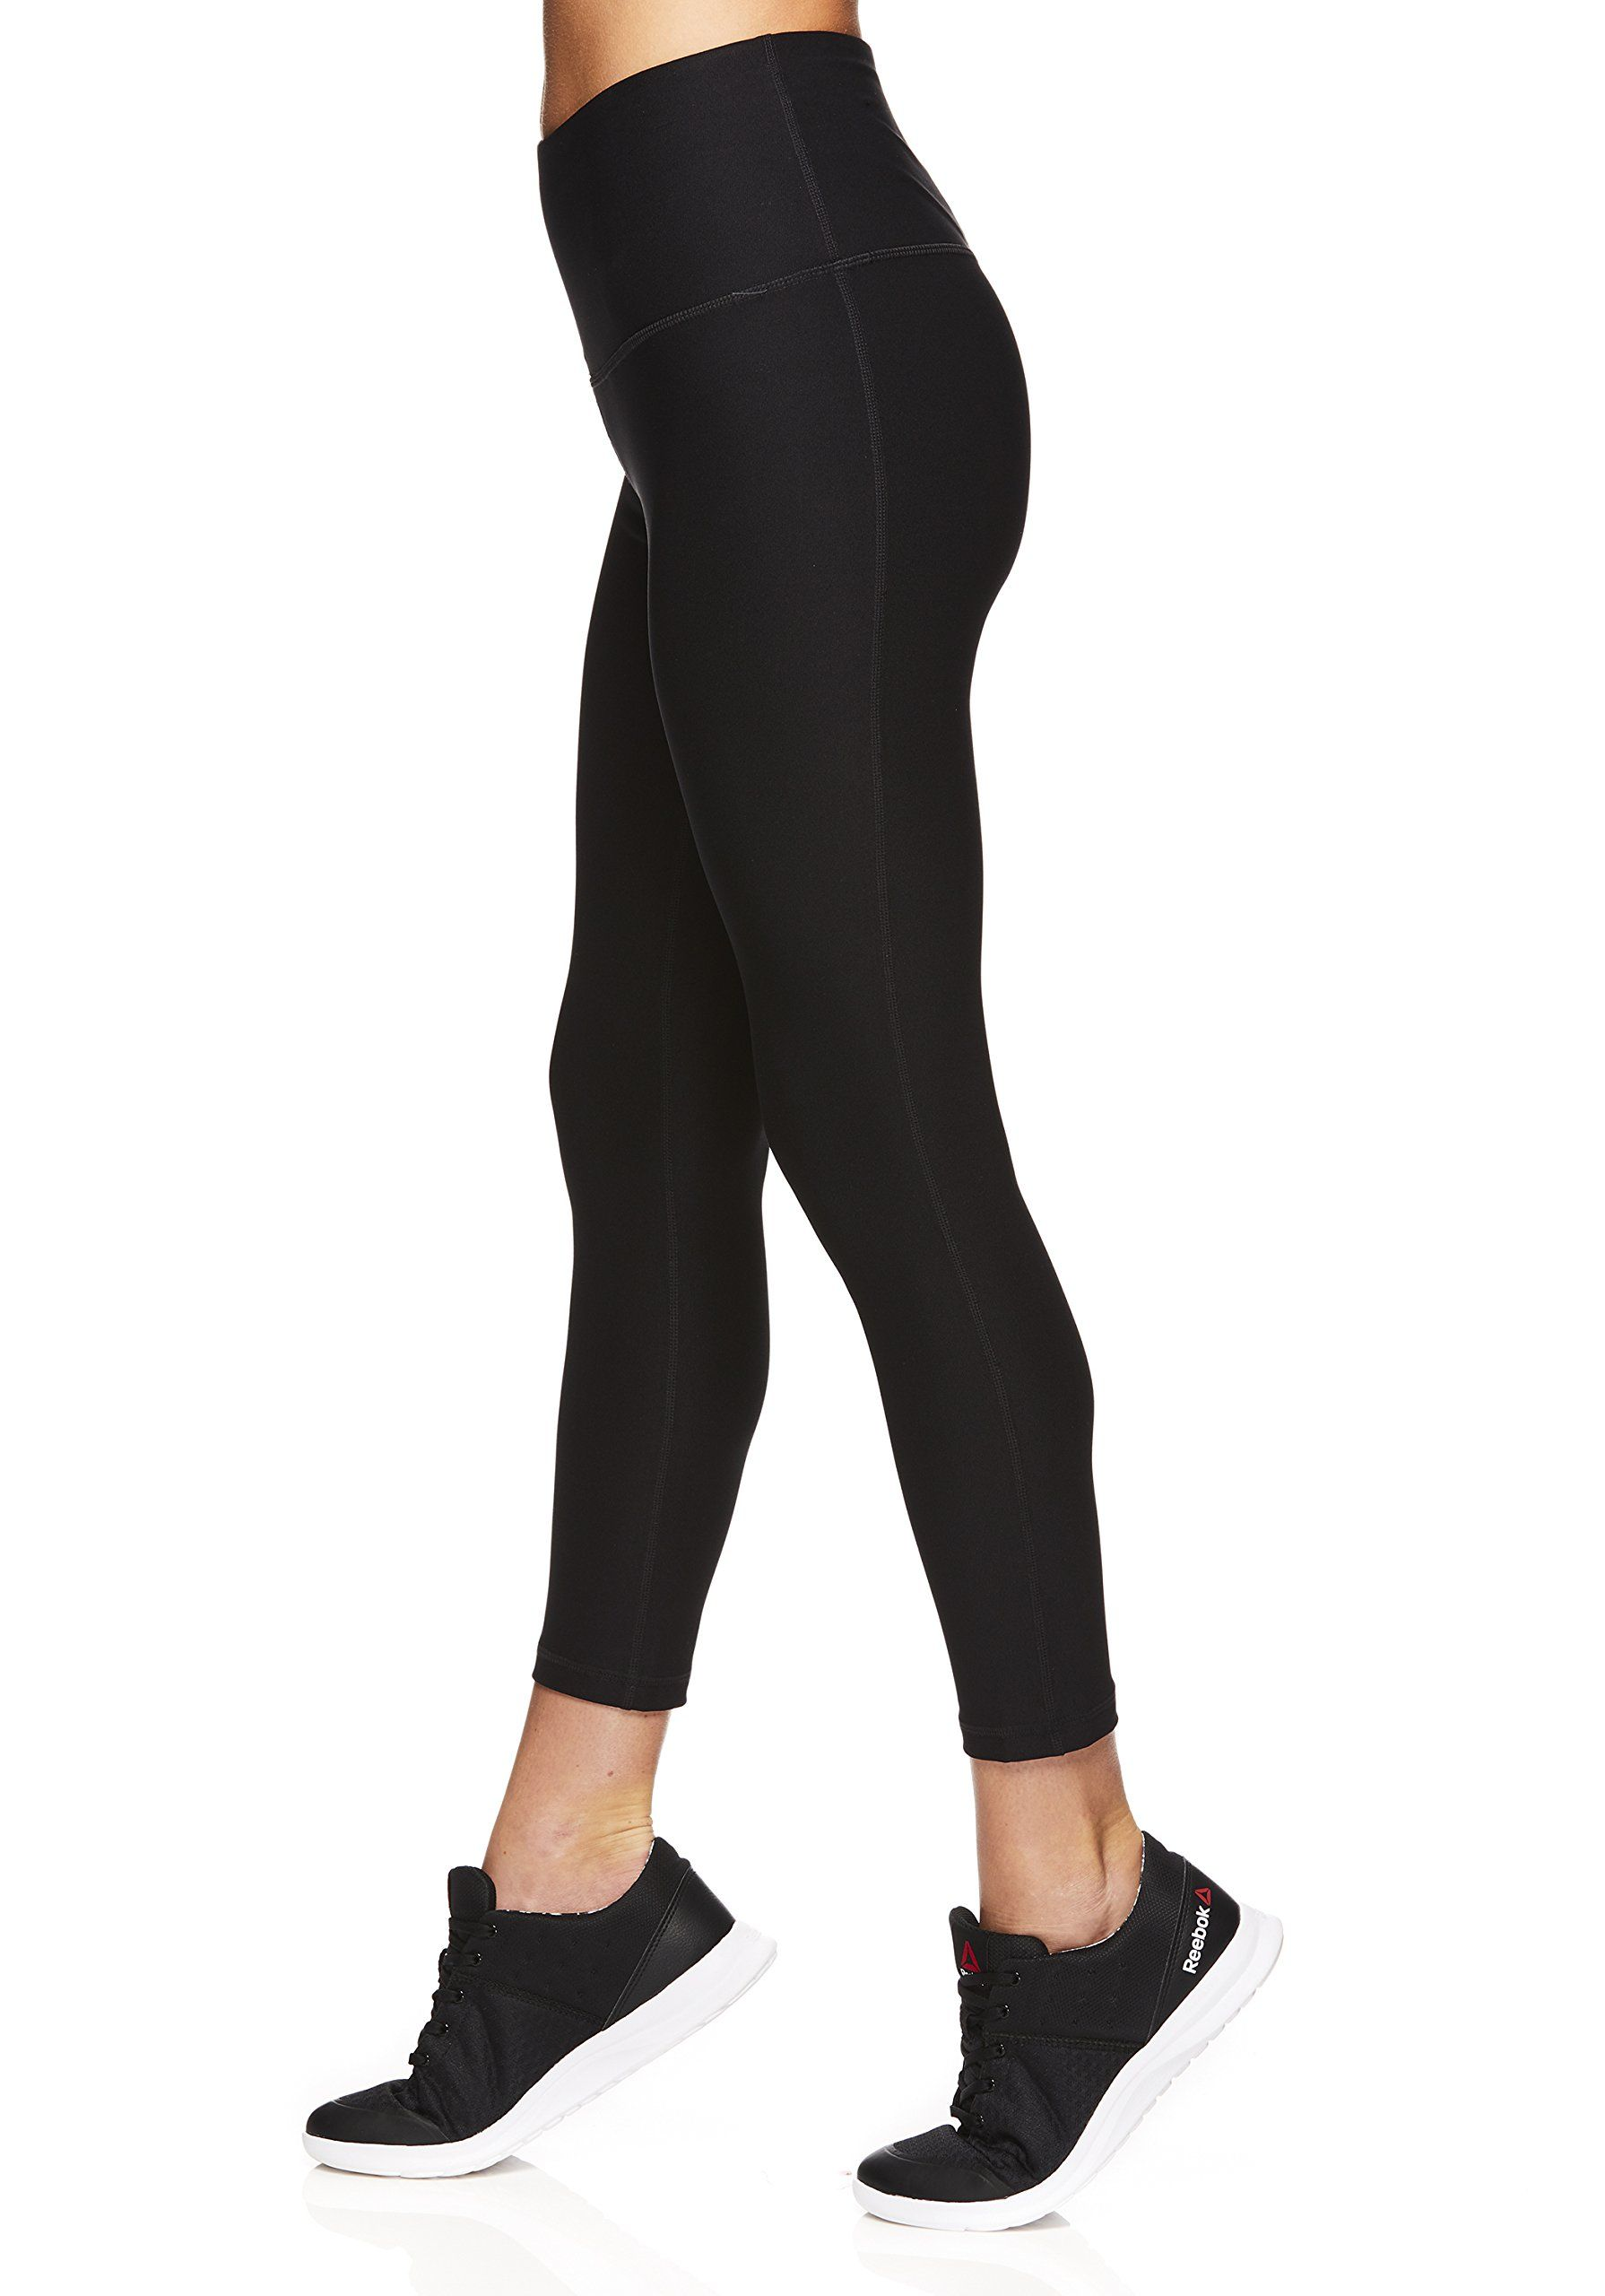 Reebok Womens Capri Leggings with HighRise Waist Performance Compression  Tights     See this great product. (This is an affiliate link and I receive  a ... 140bc5a29